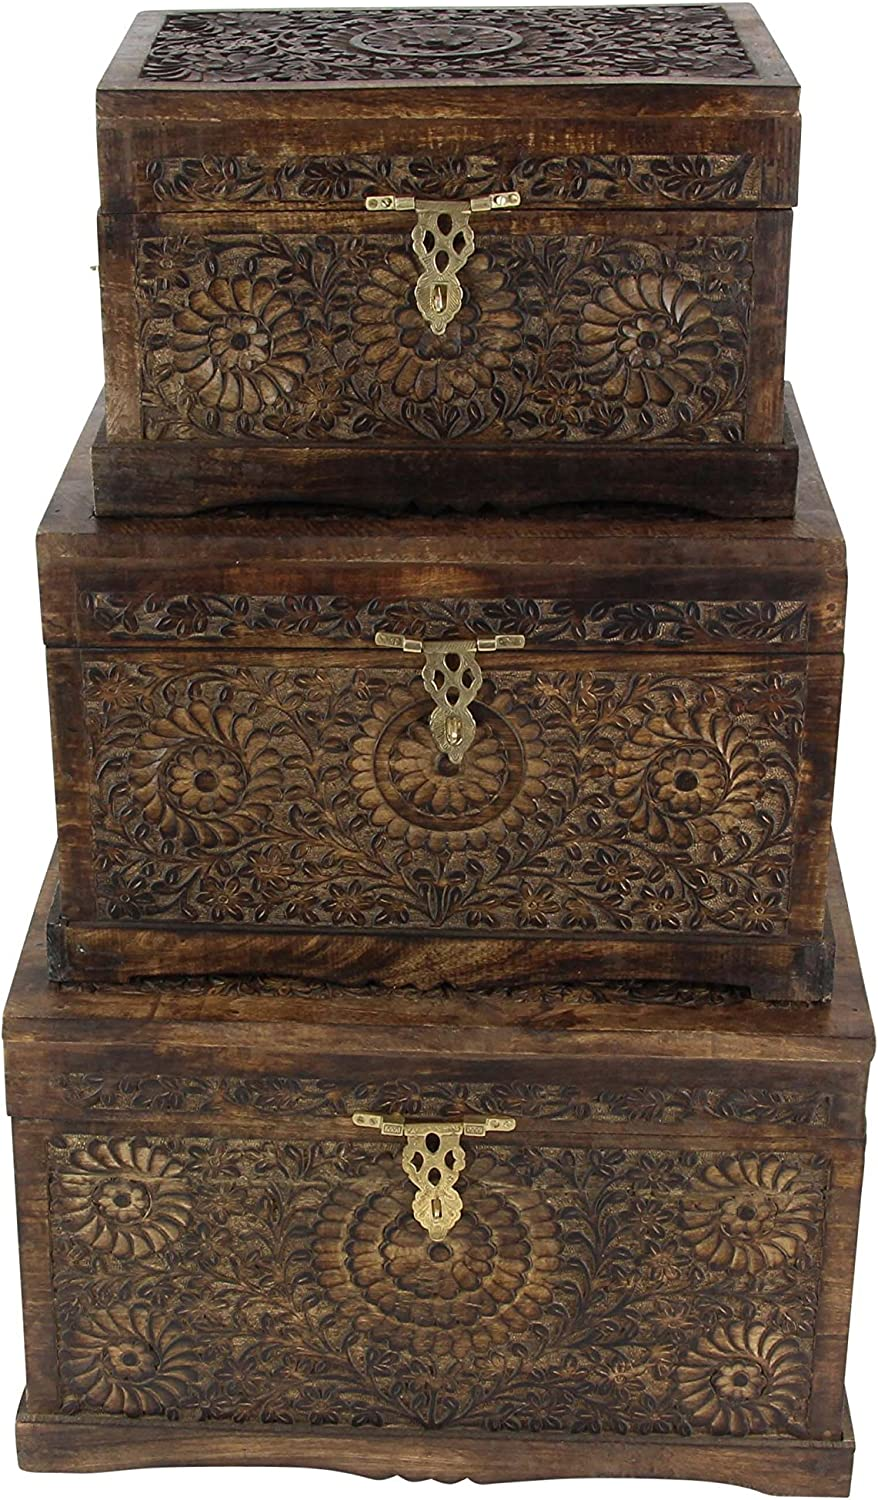 Set Of 3 Brown//Gold Deco 79 20 x 24 x 27 Wood Carved Trunk